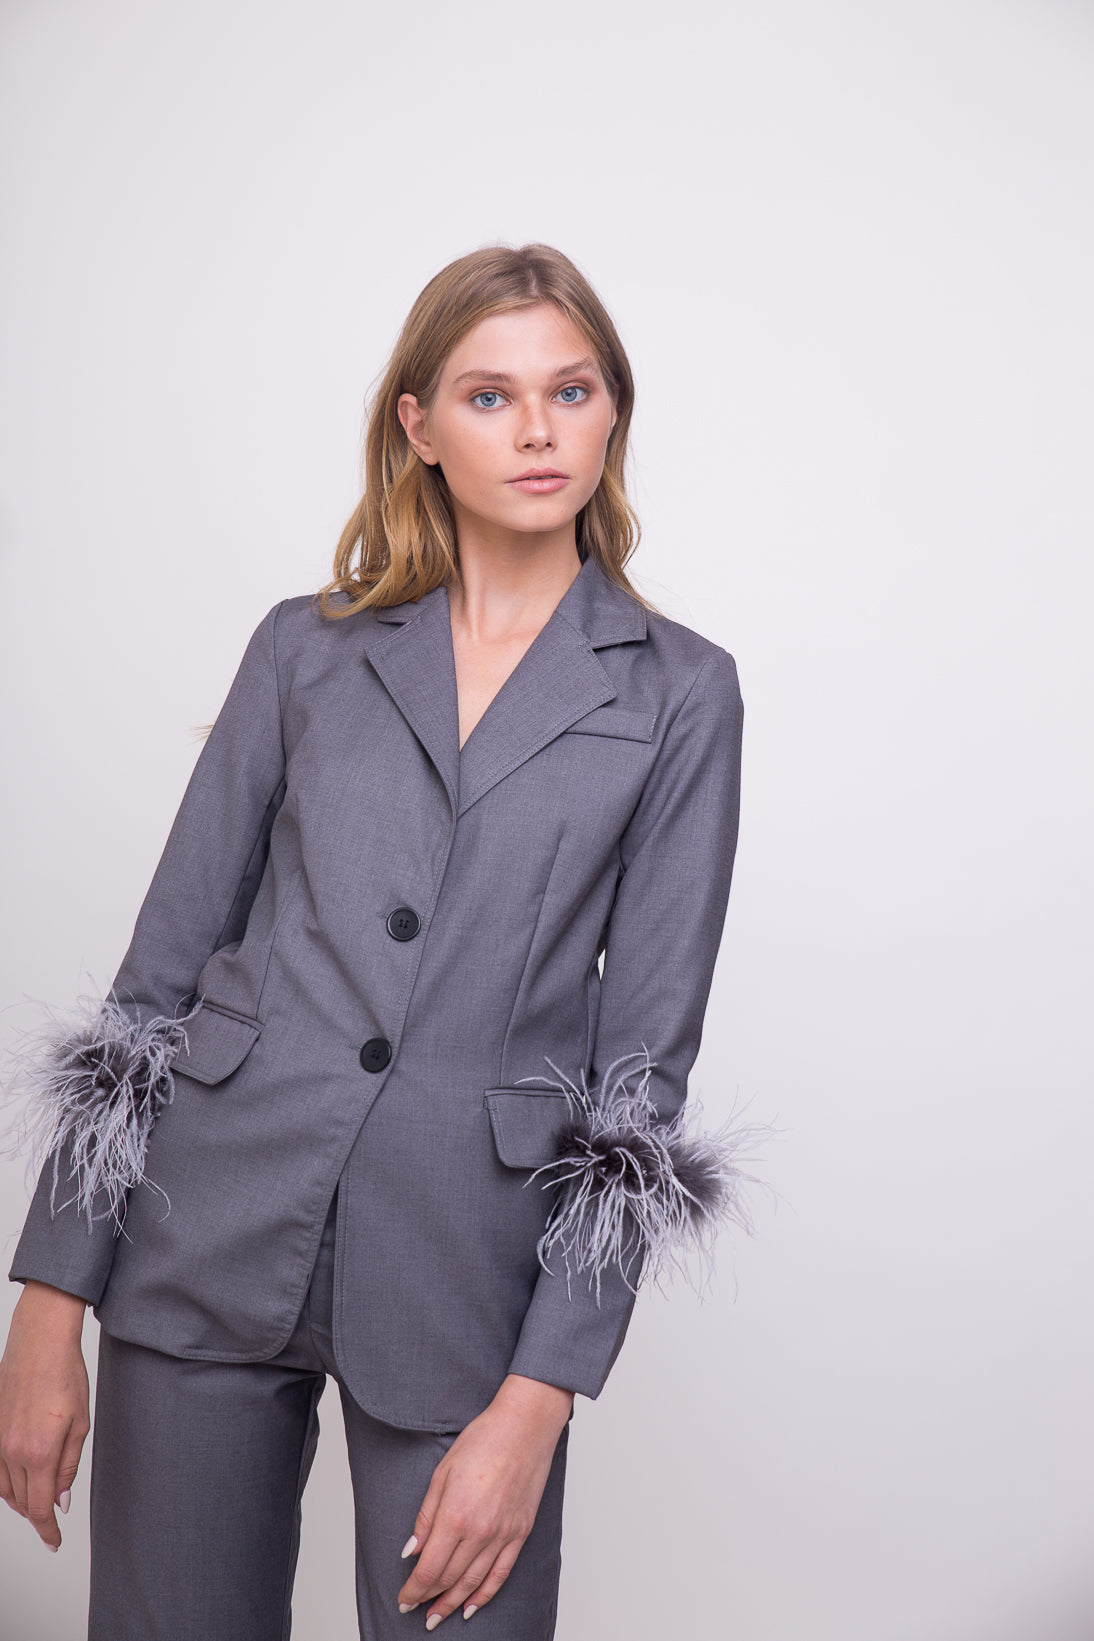 Elegant grey suit jacket with feathered details.